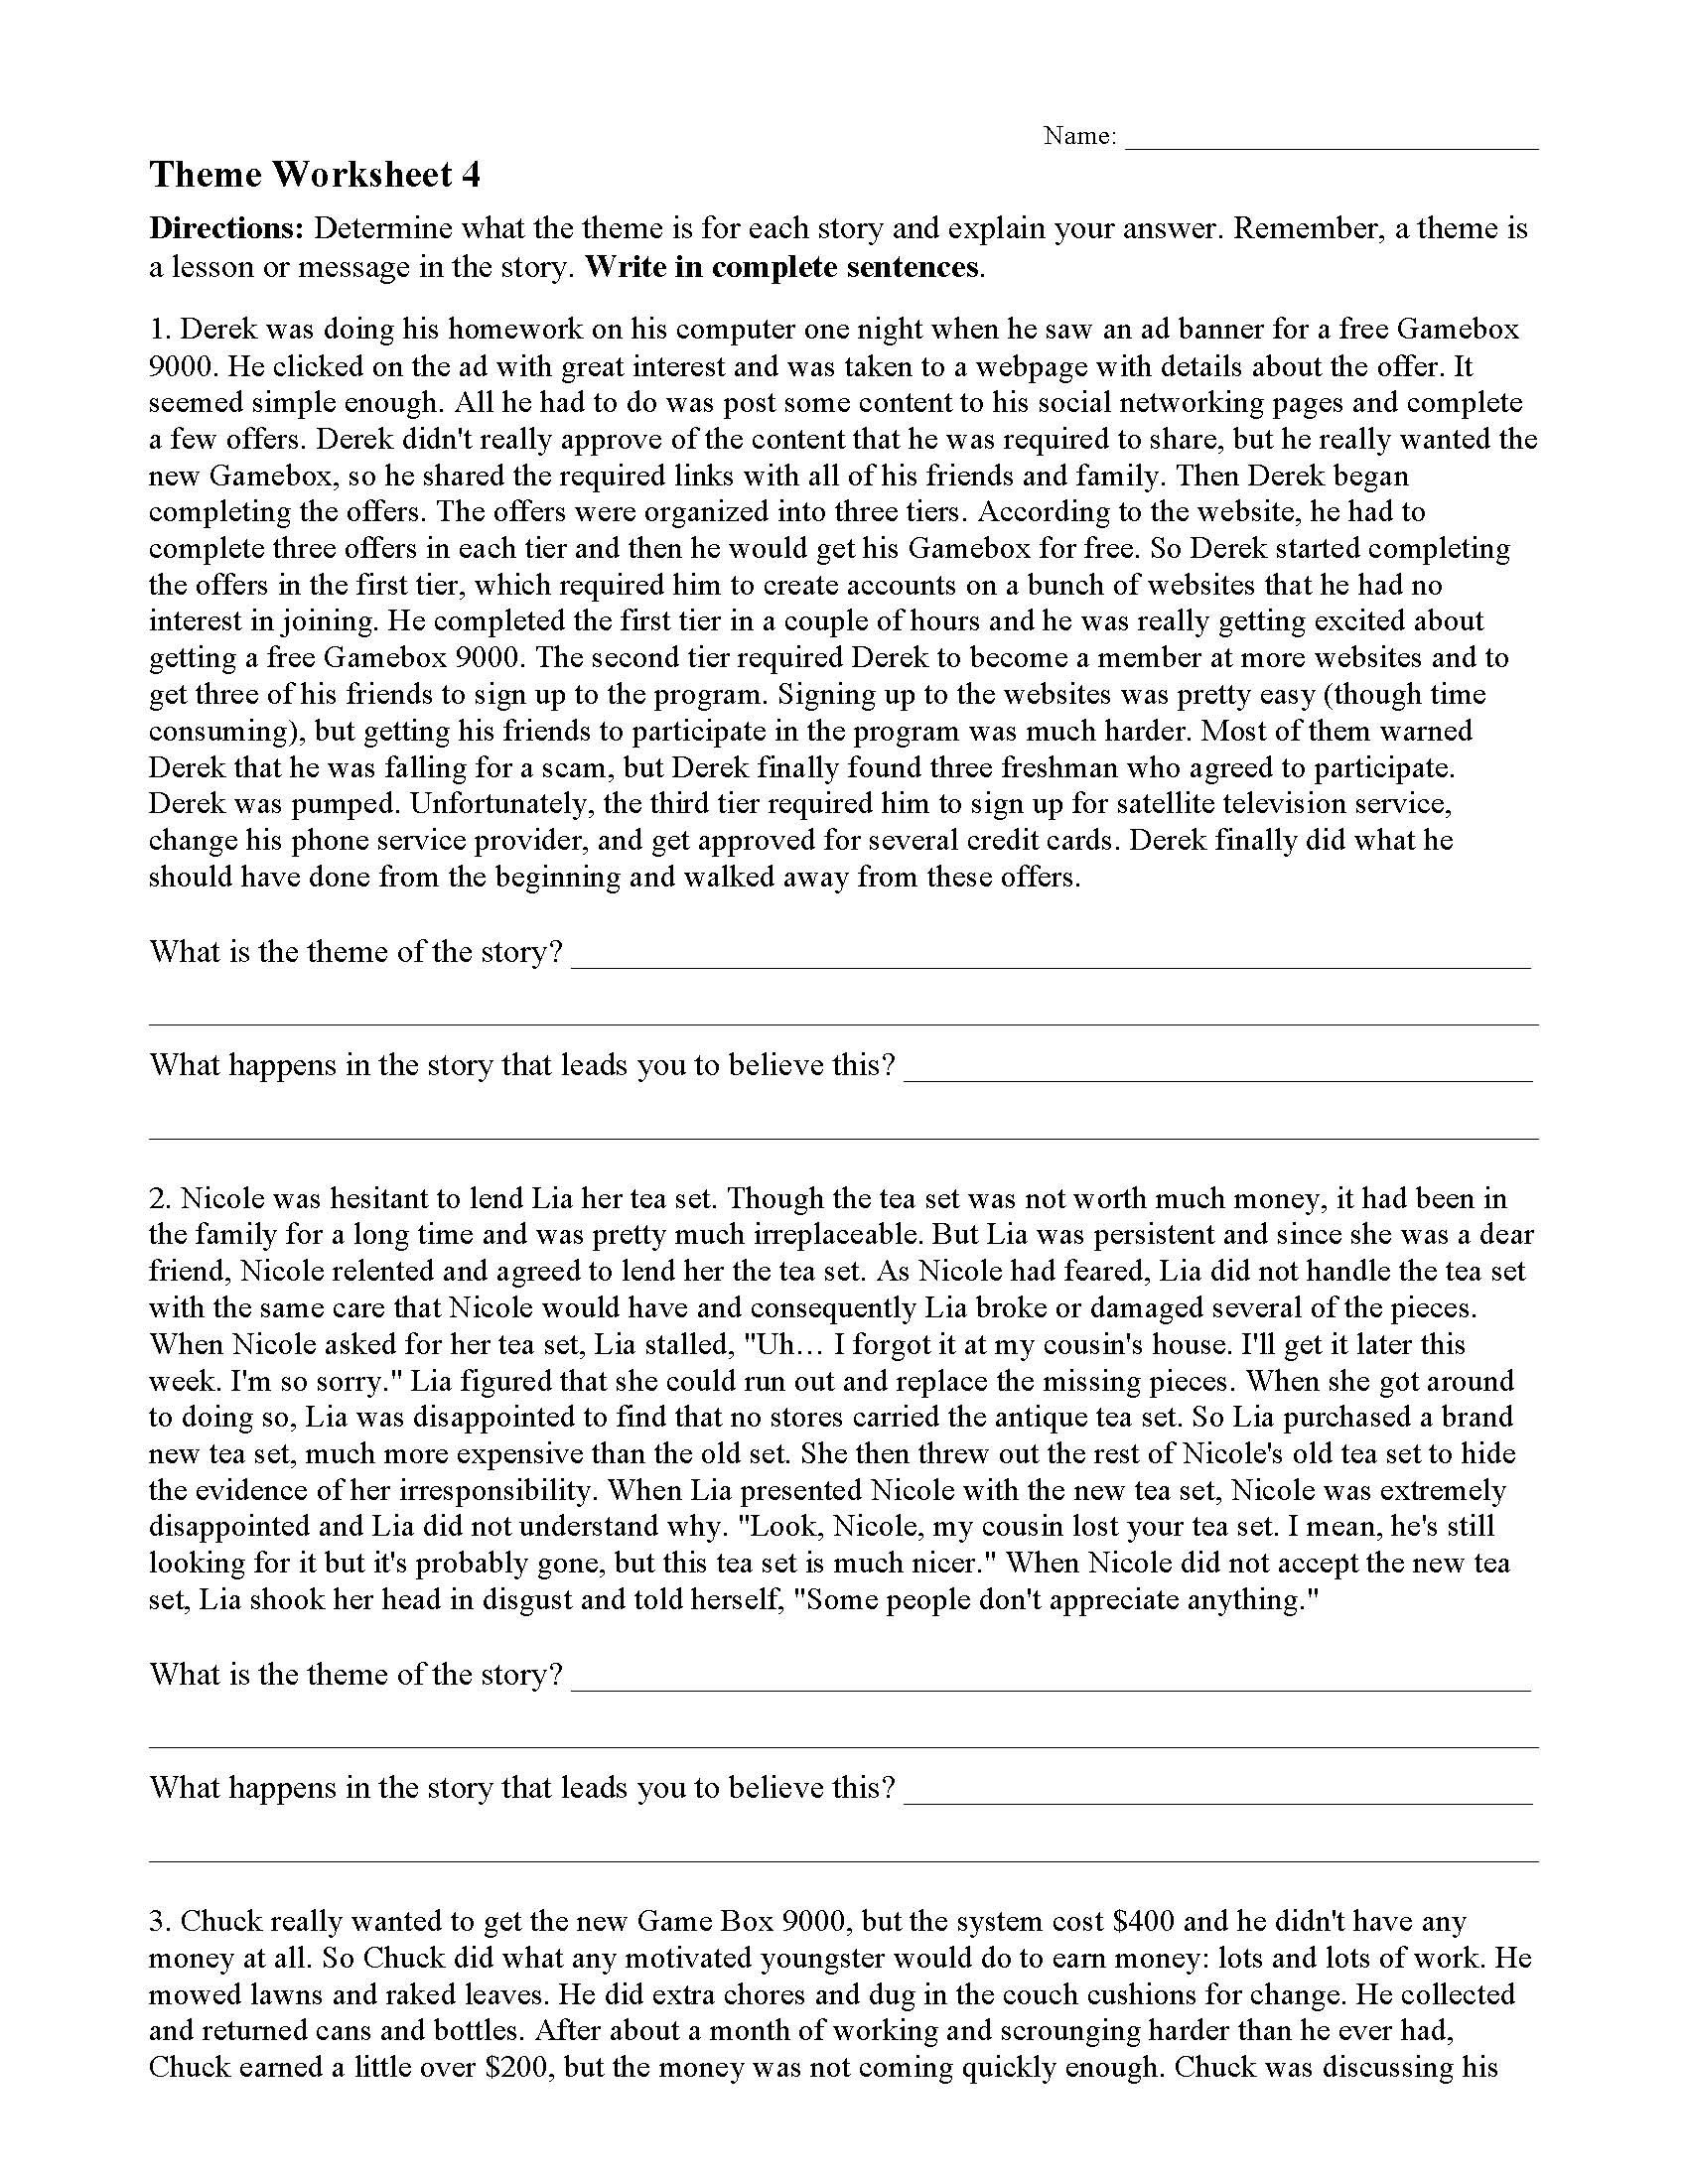 theme worksheet 04 01